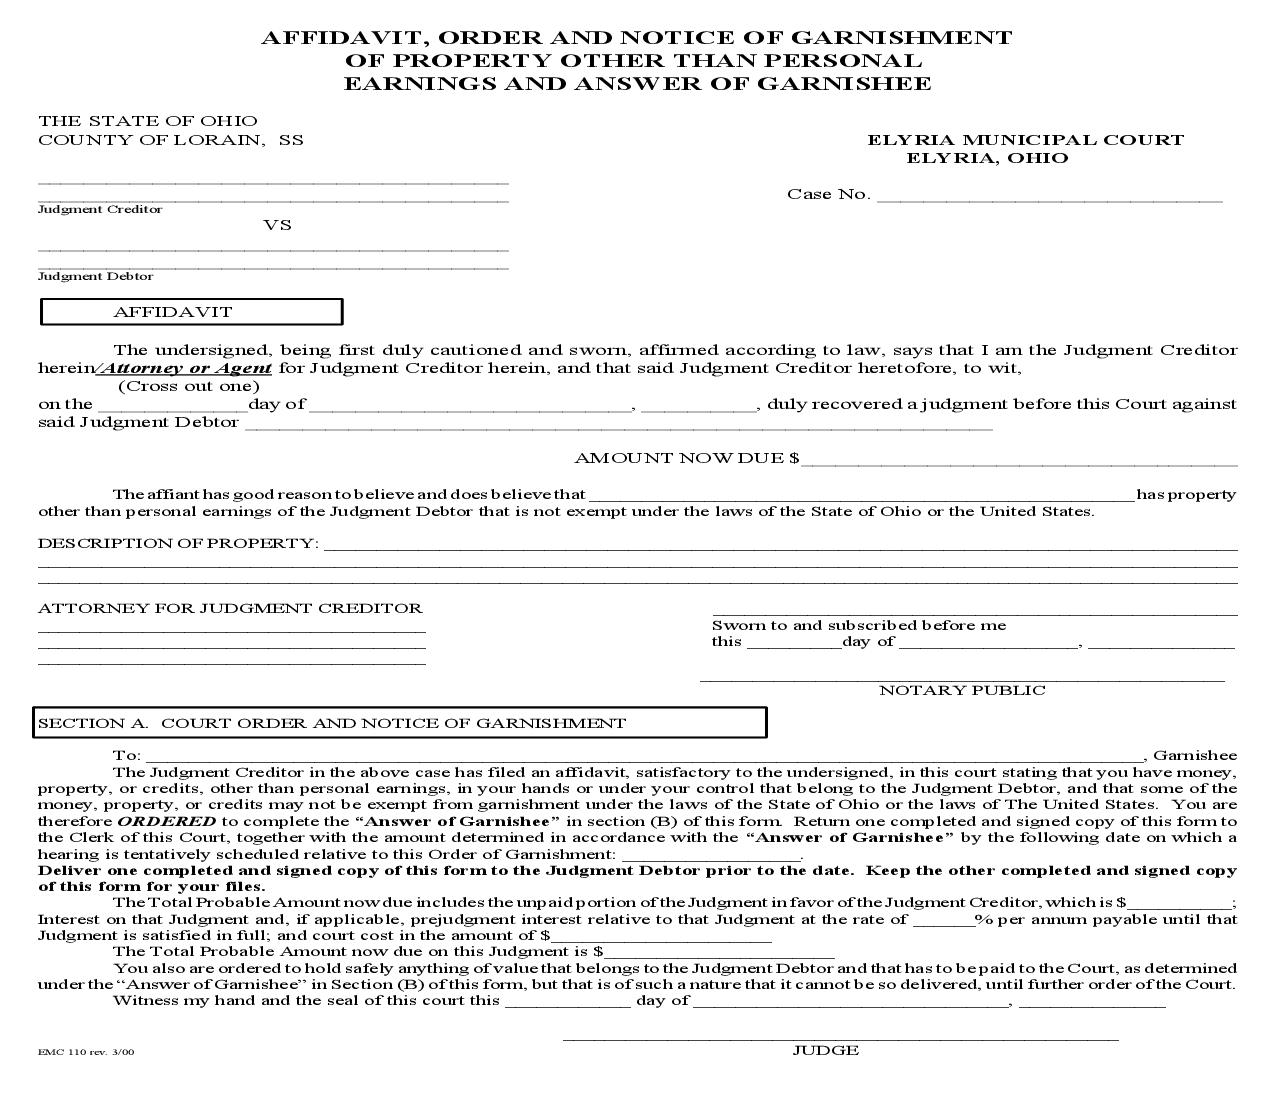 Affidavit Order And Notice Of Garnishment Of Property Other Than Personal Earnings And Answer Of Garnishee {EMC 110} | Pdf Fpdf Doc Docx | Ohio